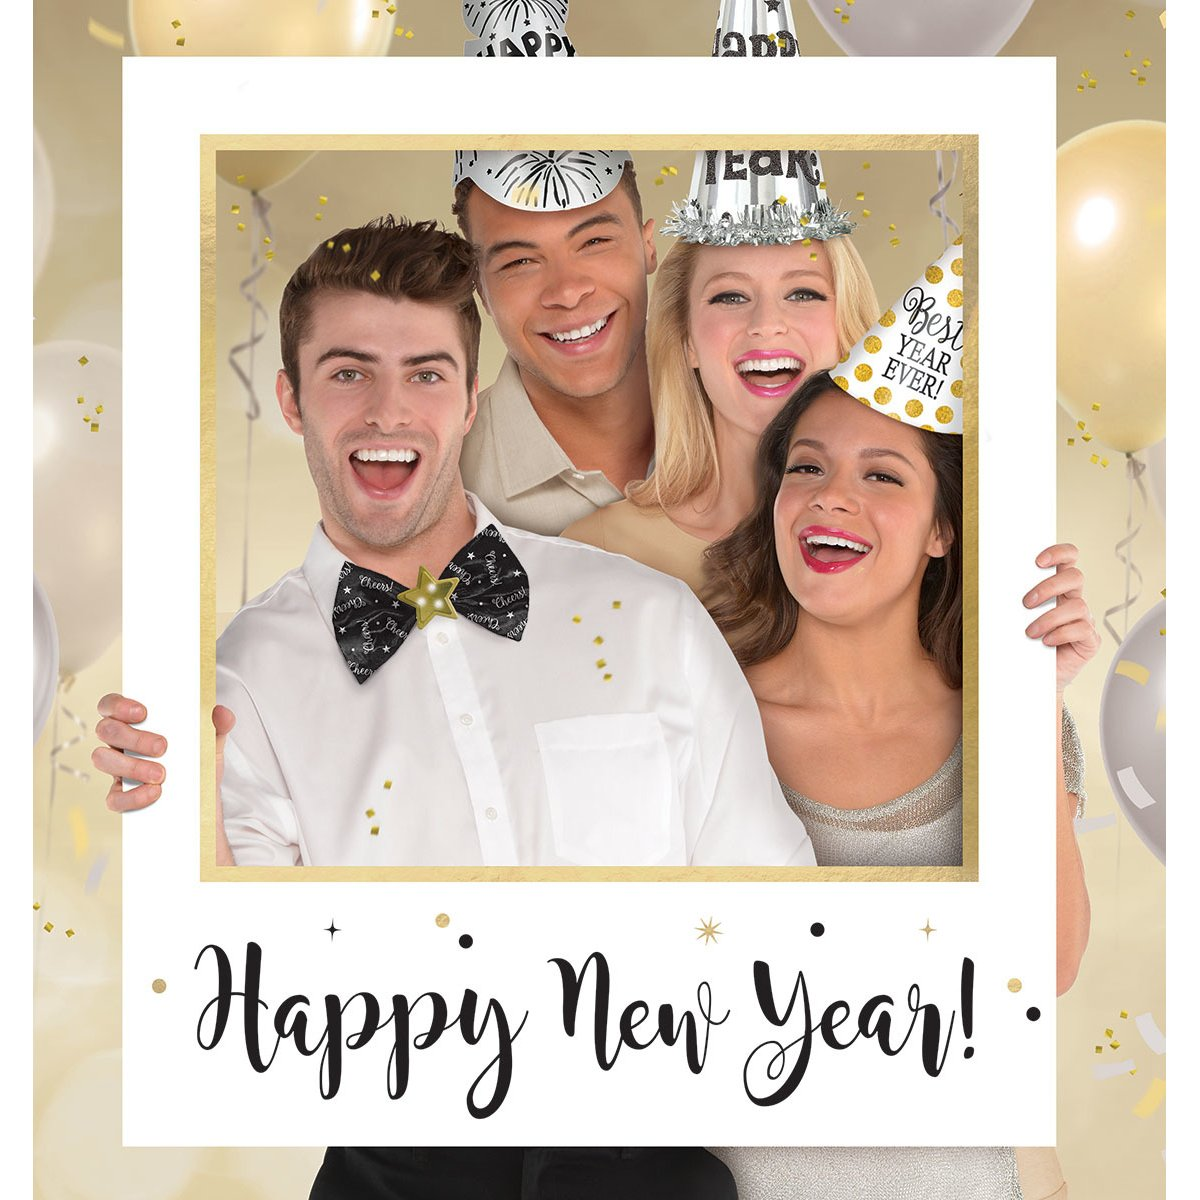 Amazon.com: Giant Happy New Year Photo Frame Photo Prop: Toys & Games